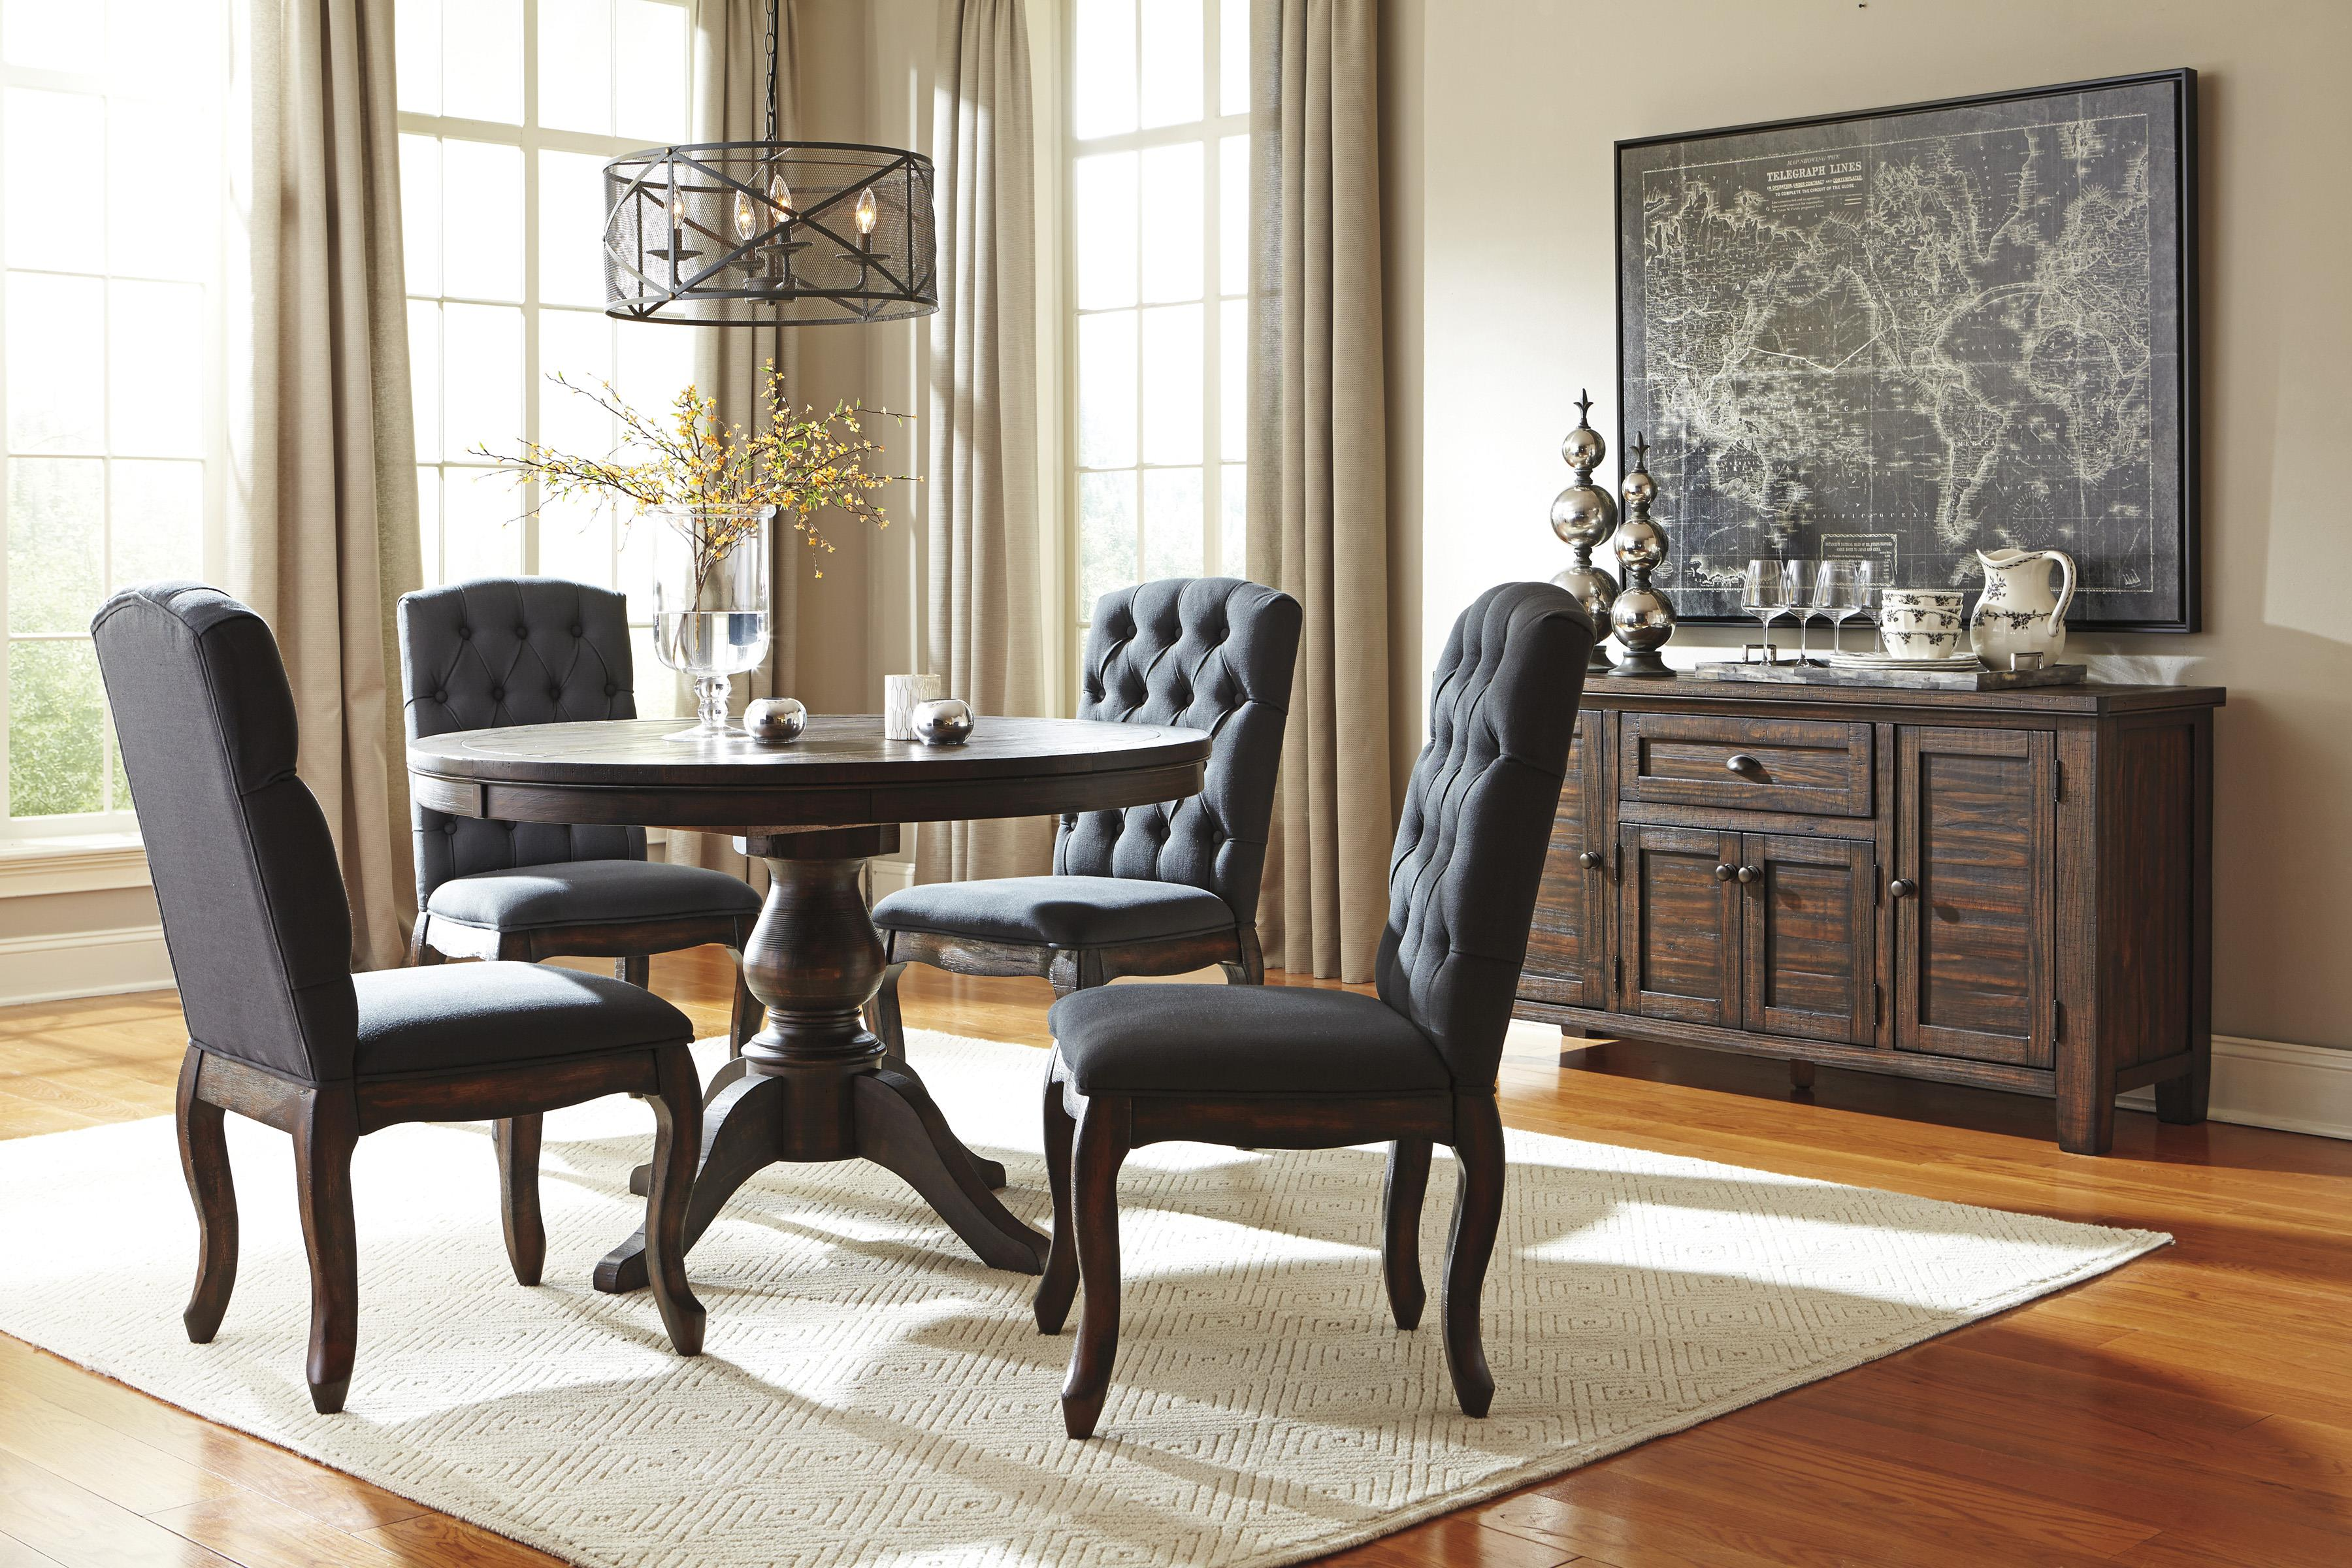 Trudell Casual Dining Room Group by Signature Design by Ashley at Lapeer Furniture & Mattress Center